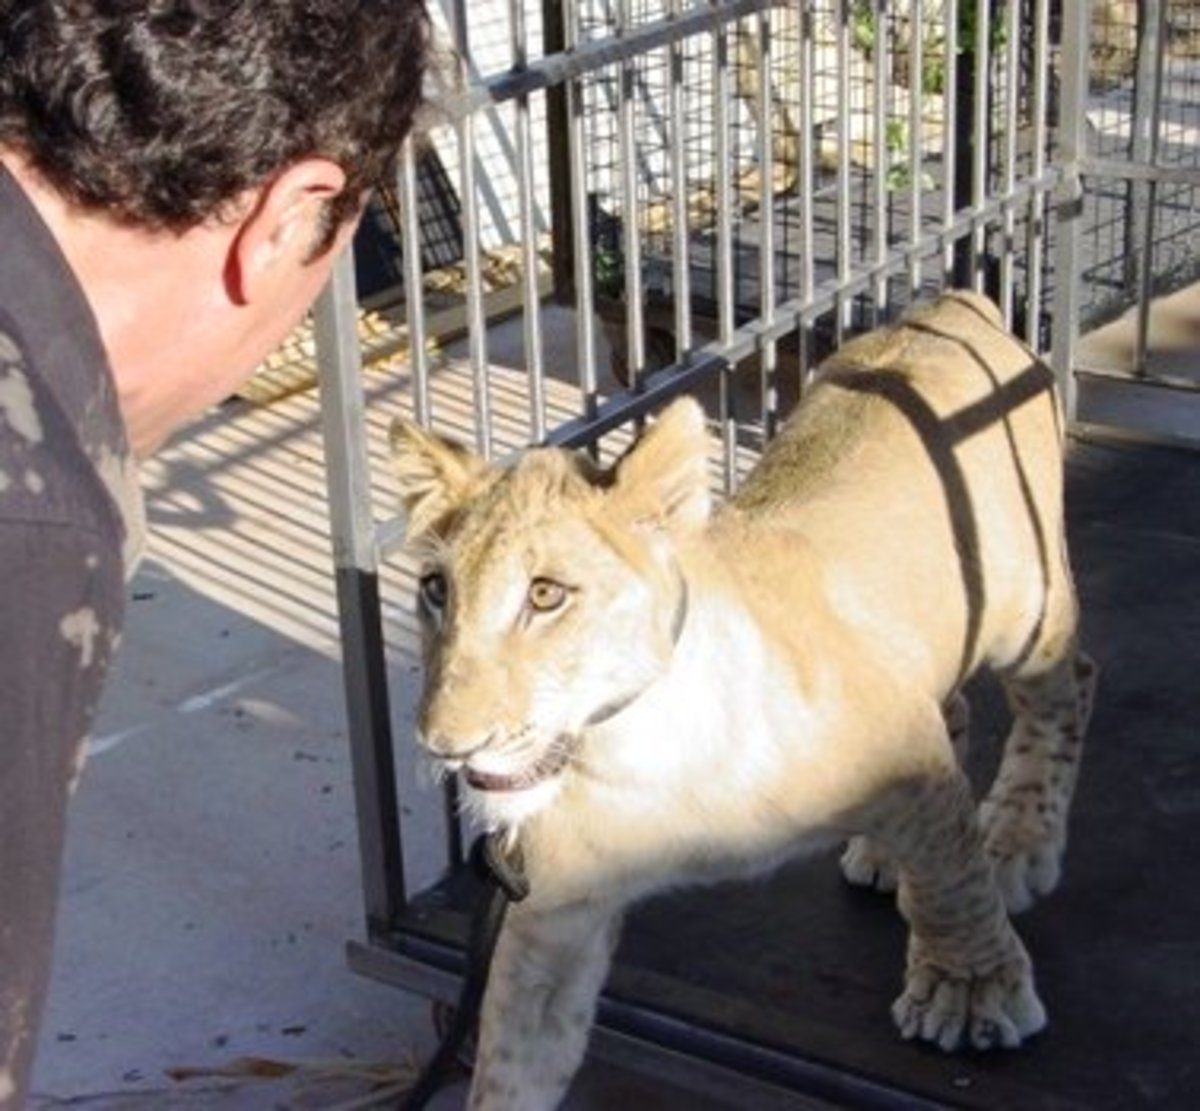 Lion cub being introduced to a crate early